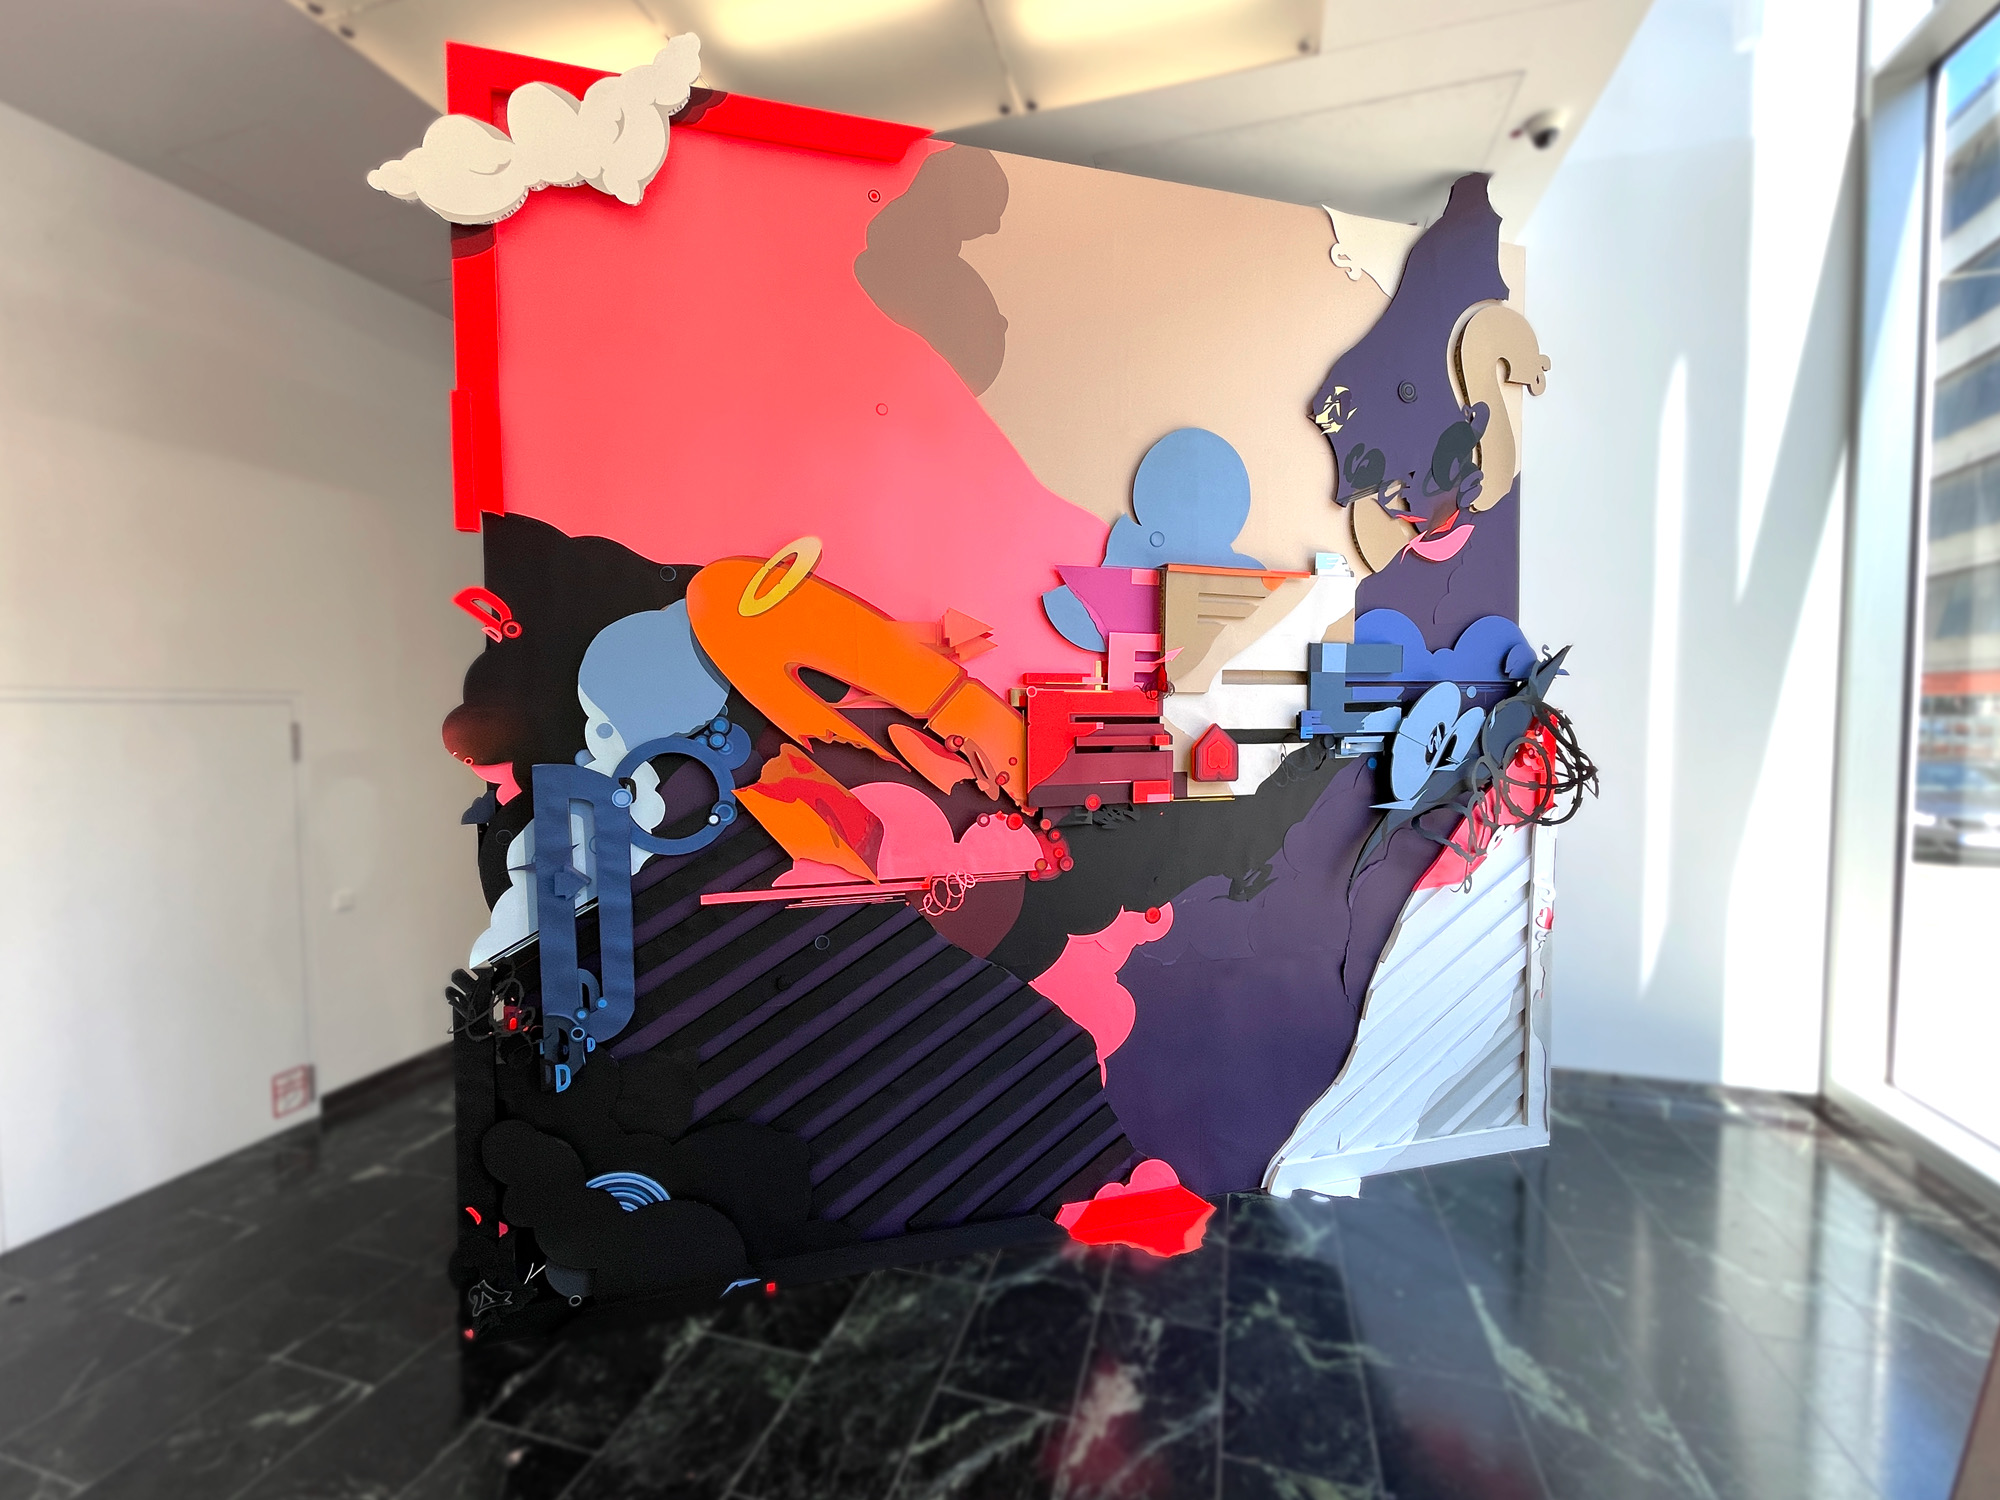 A work by Does - Final Collage mural Munich 2021